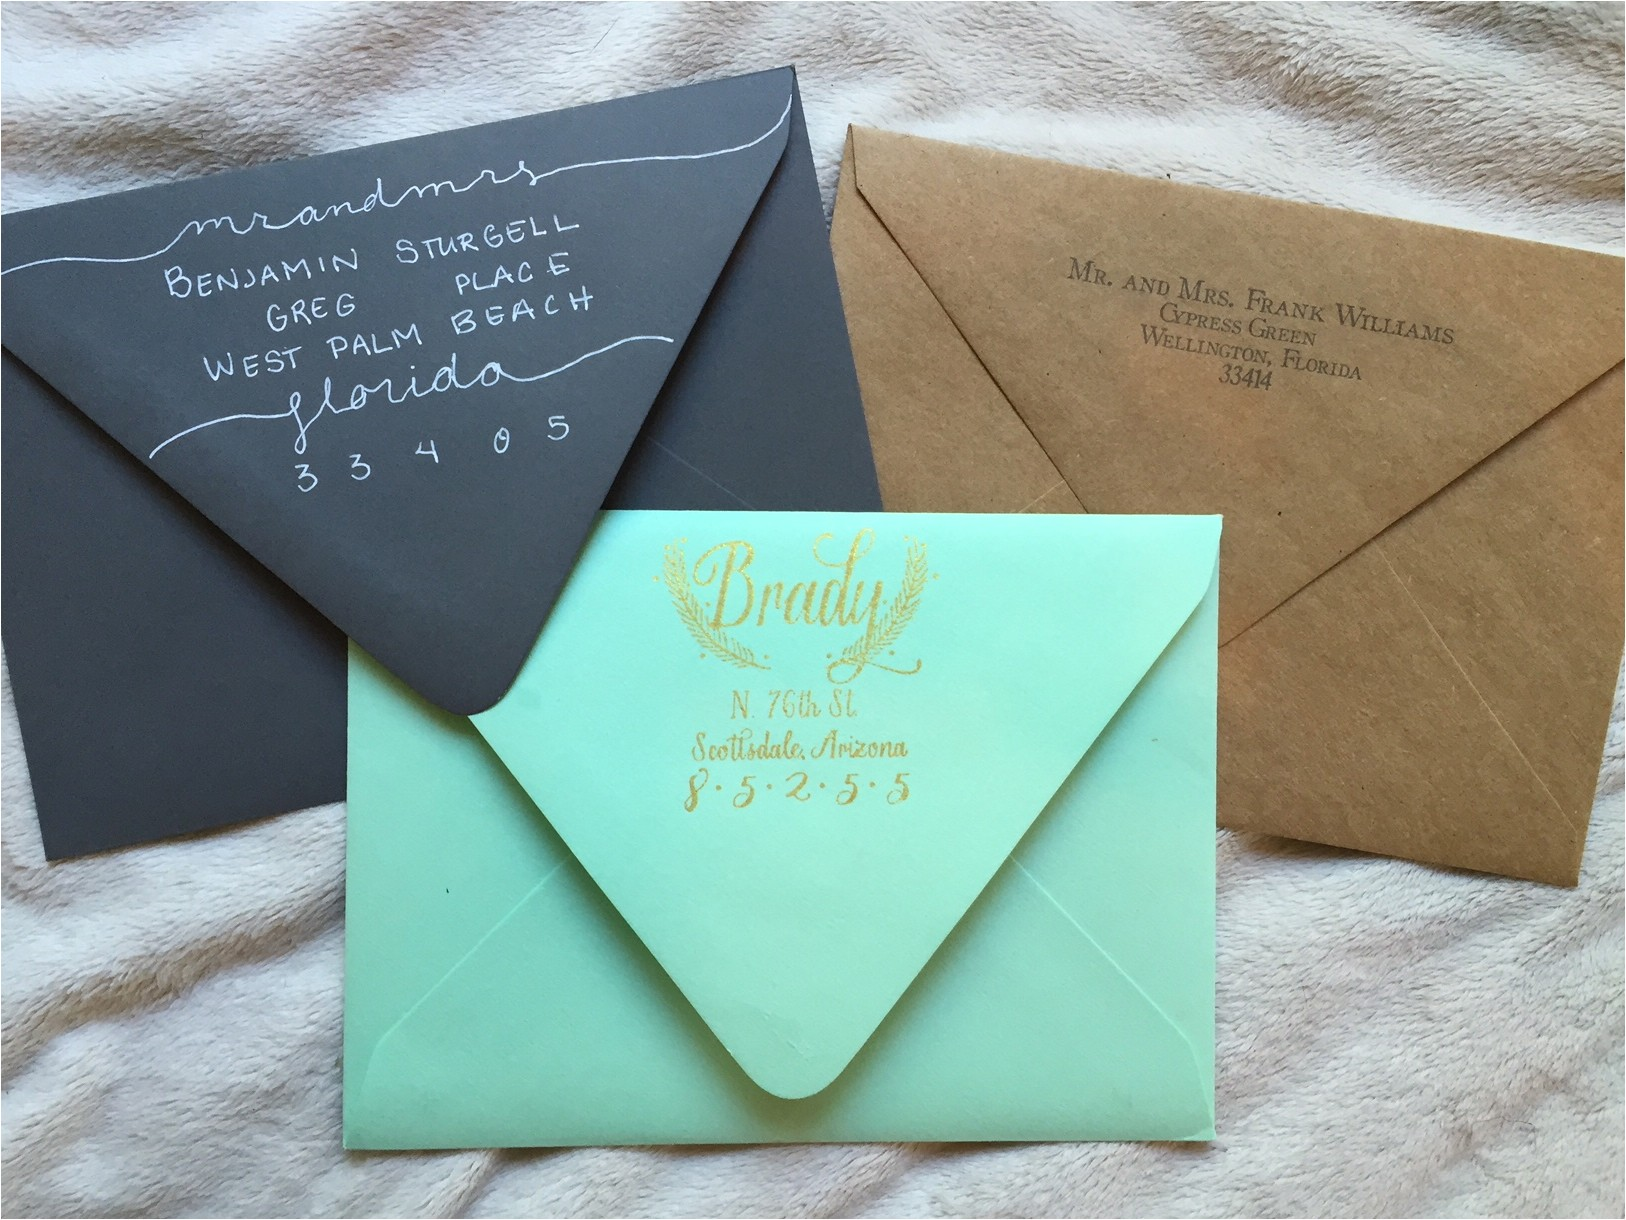 Wedding Invitations Etiquette Addressing Envelopes Etiquette Rules Addressing Envelopes